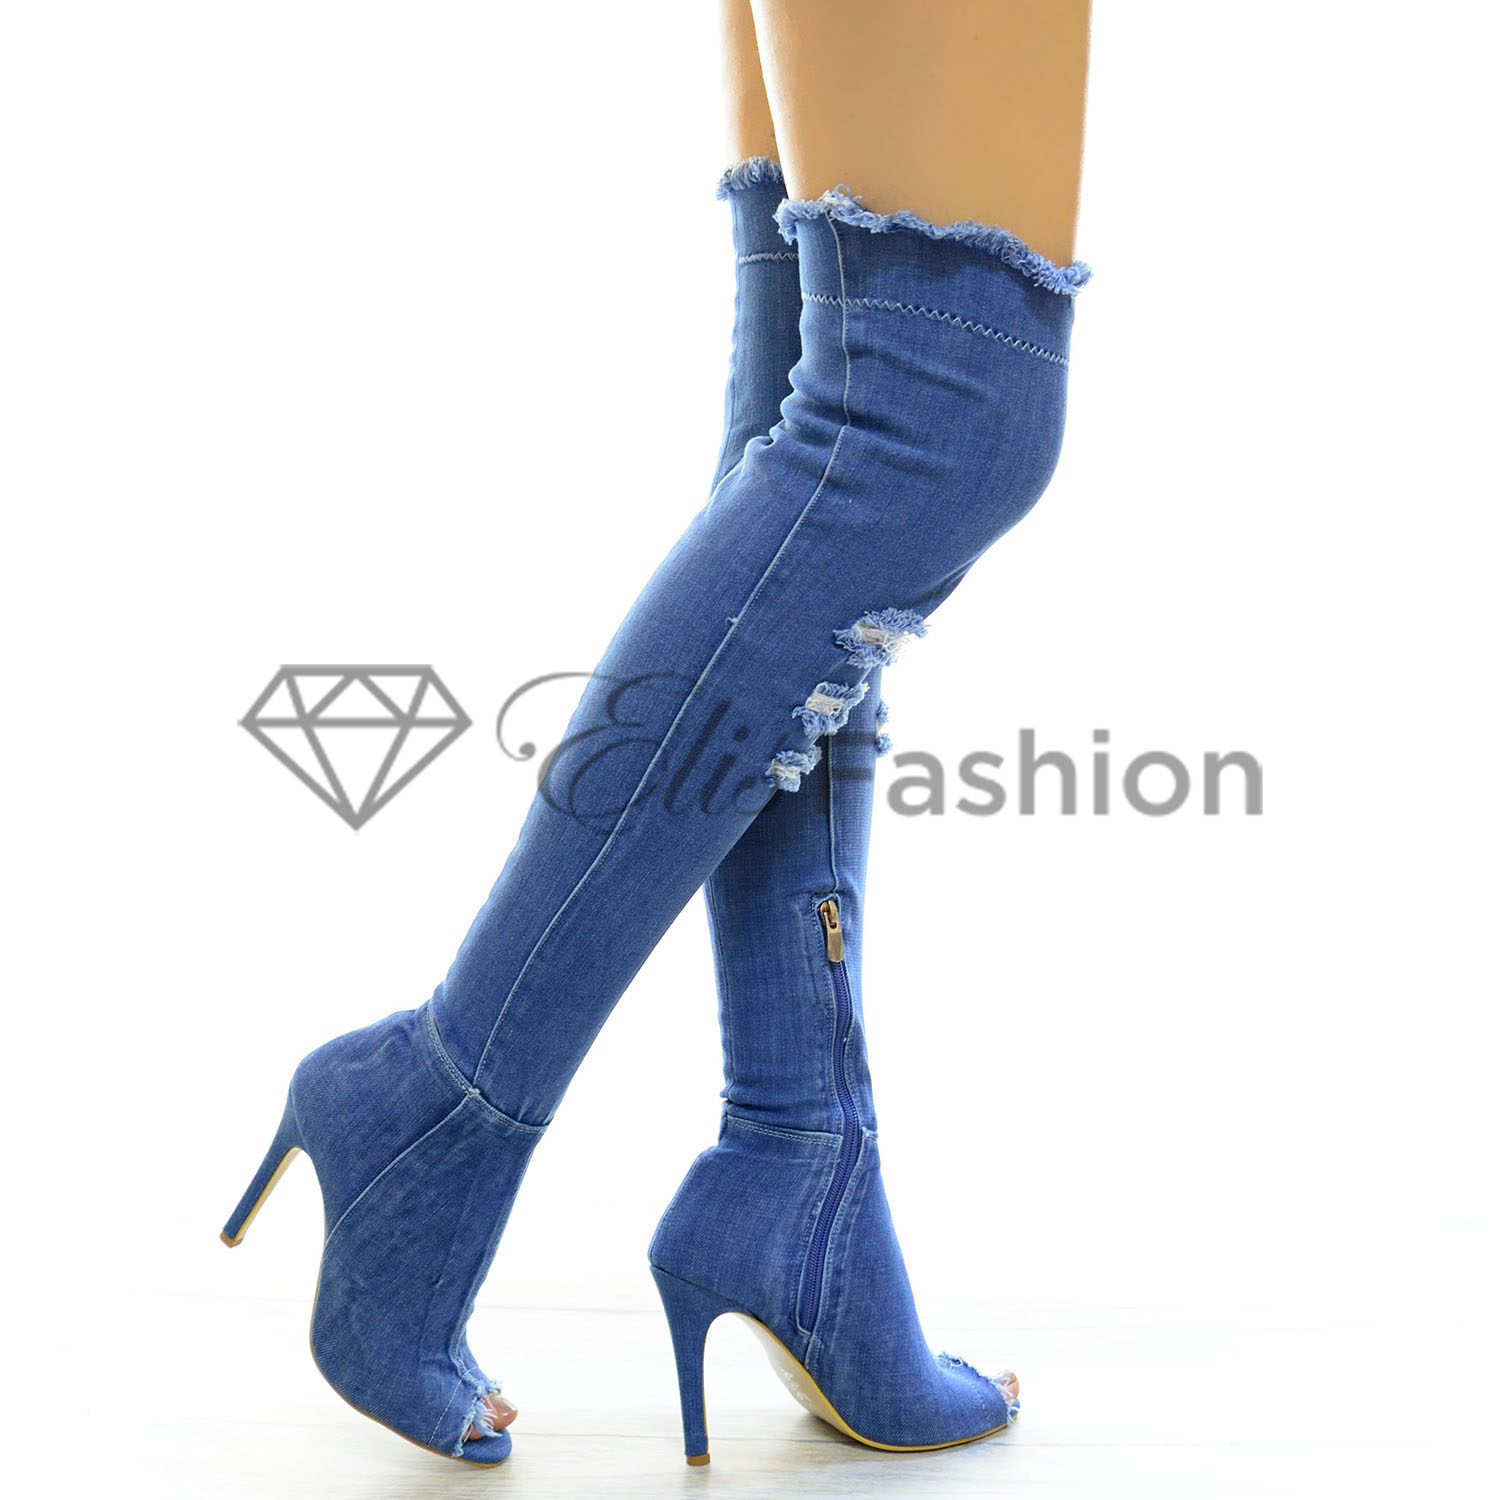 Cizme Gorgeous Blue Jeans #4662